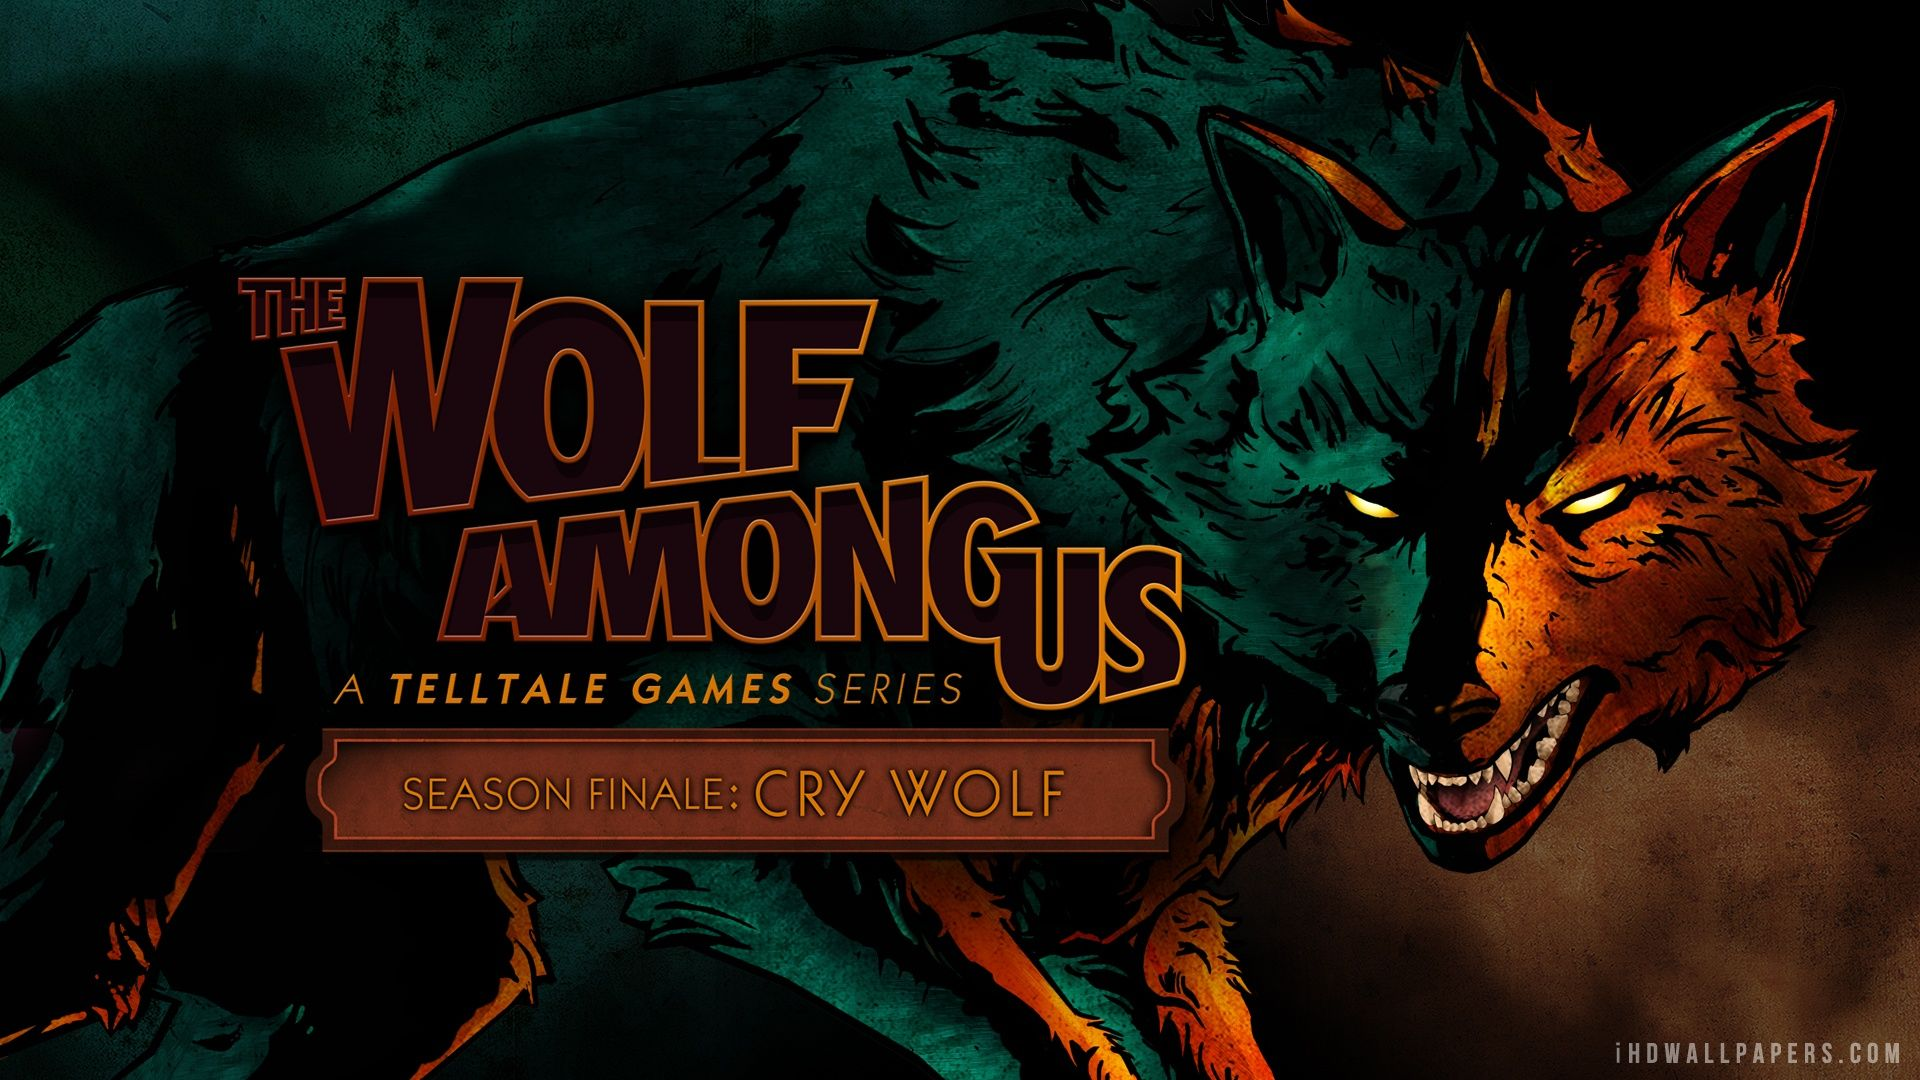 The Wolf Among Us Wallpaper Wallpapersafari The Wolf Among Us Wolf Comics Wolf